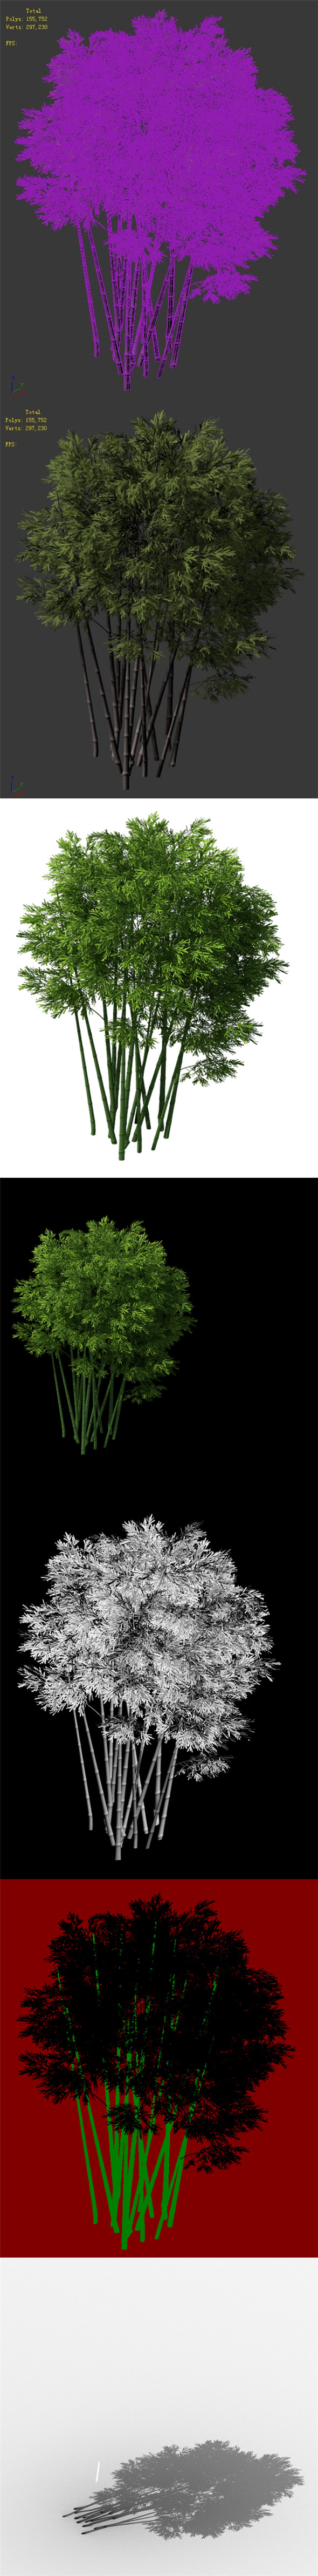 3DOcean Plant Bamboo 032 20169622